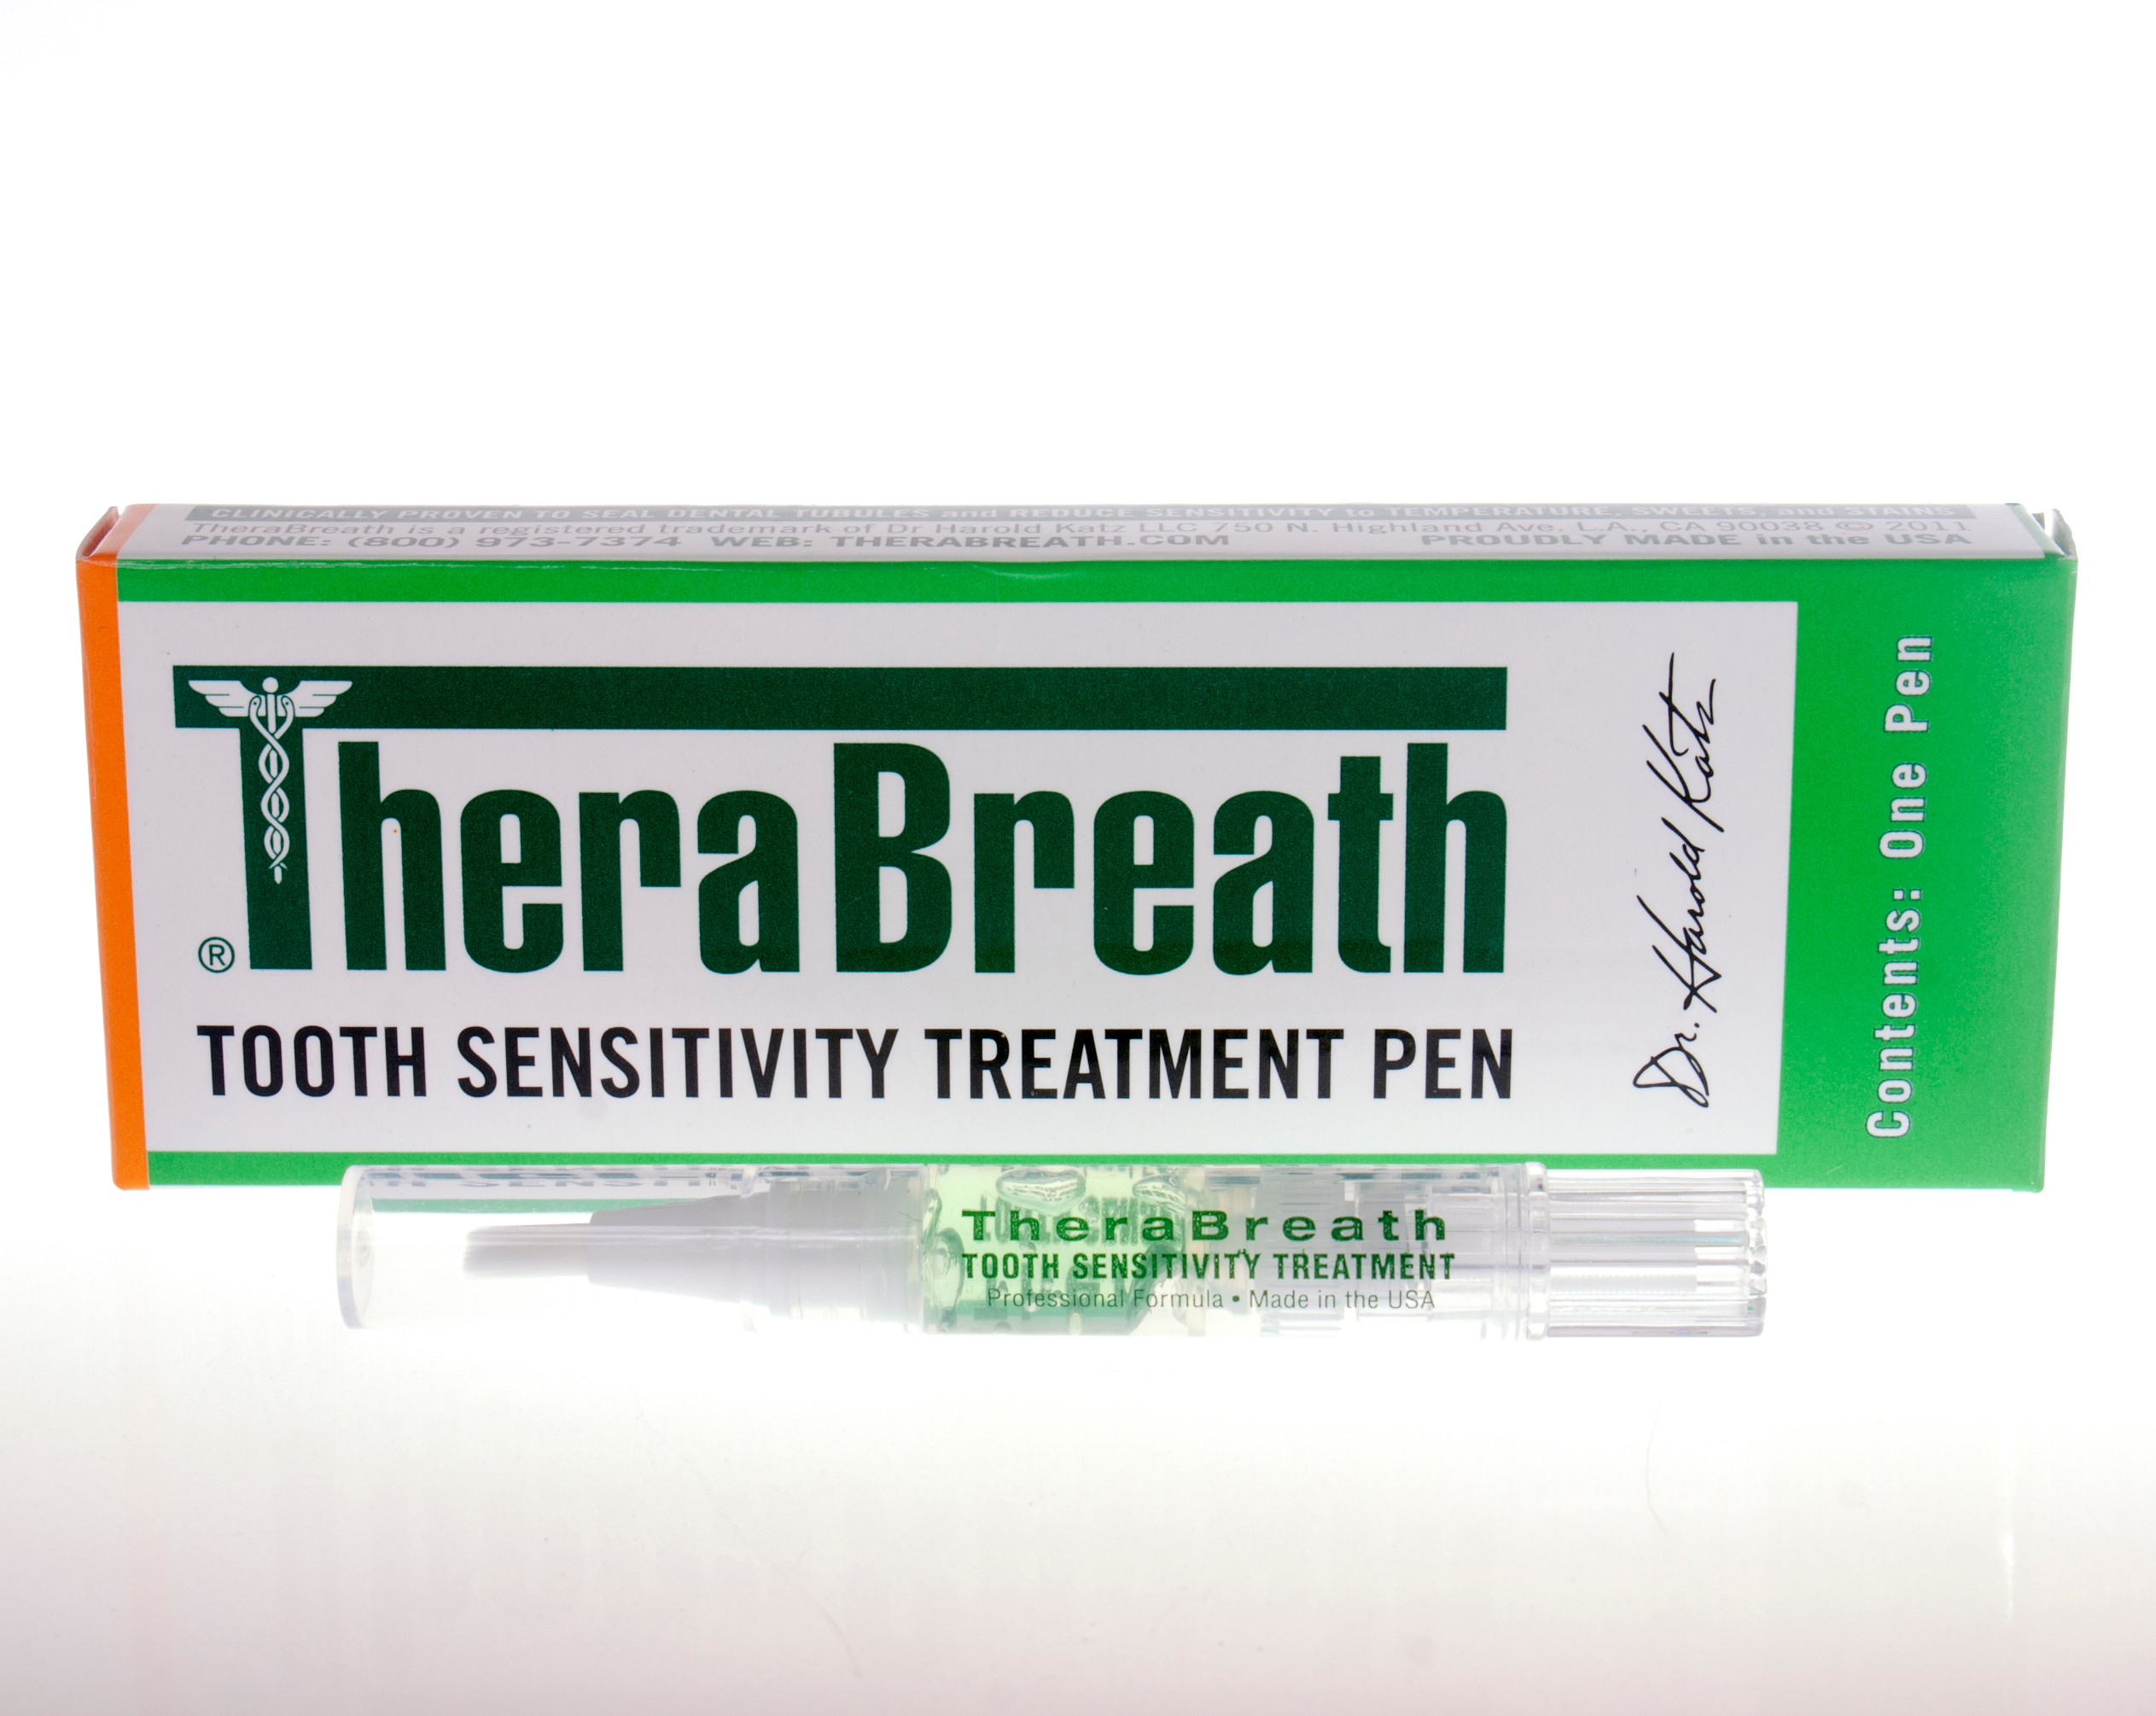 TheraBreath Tooth Sensitivity Treatment Pen